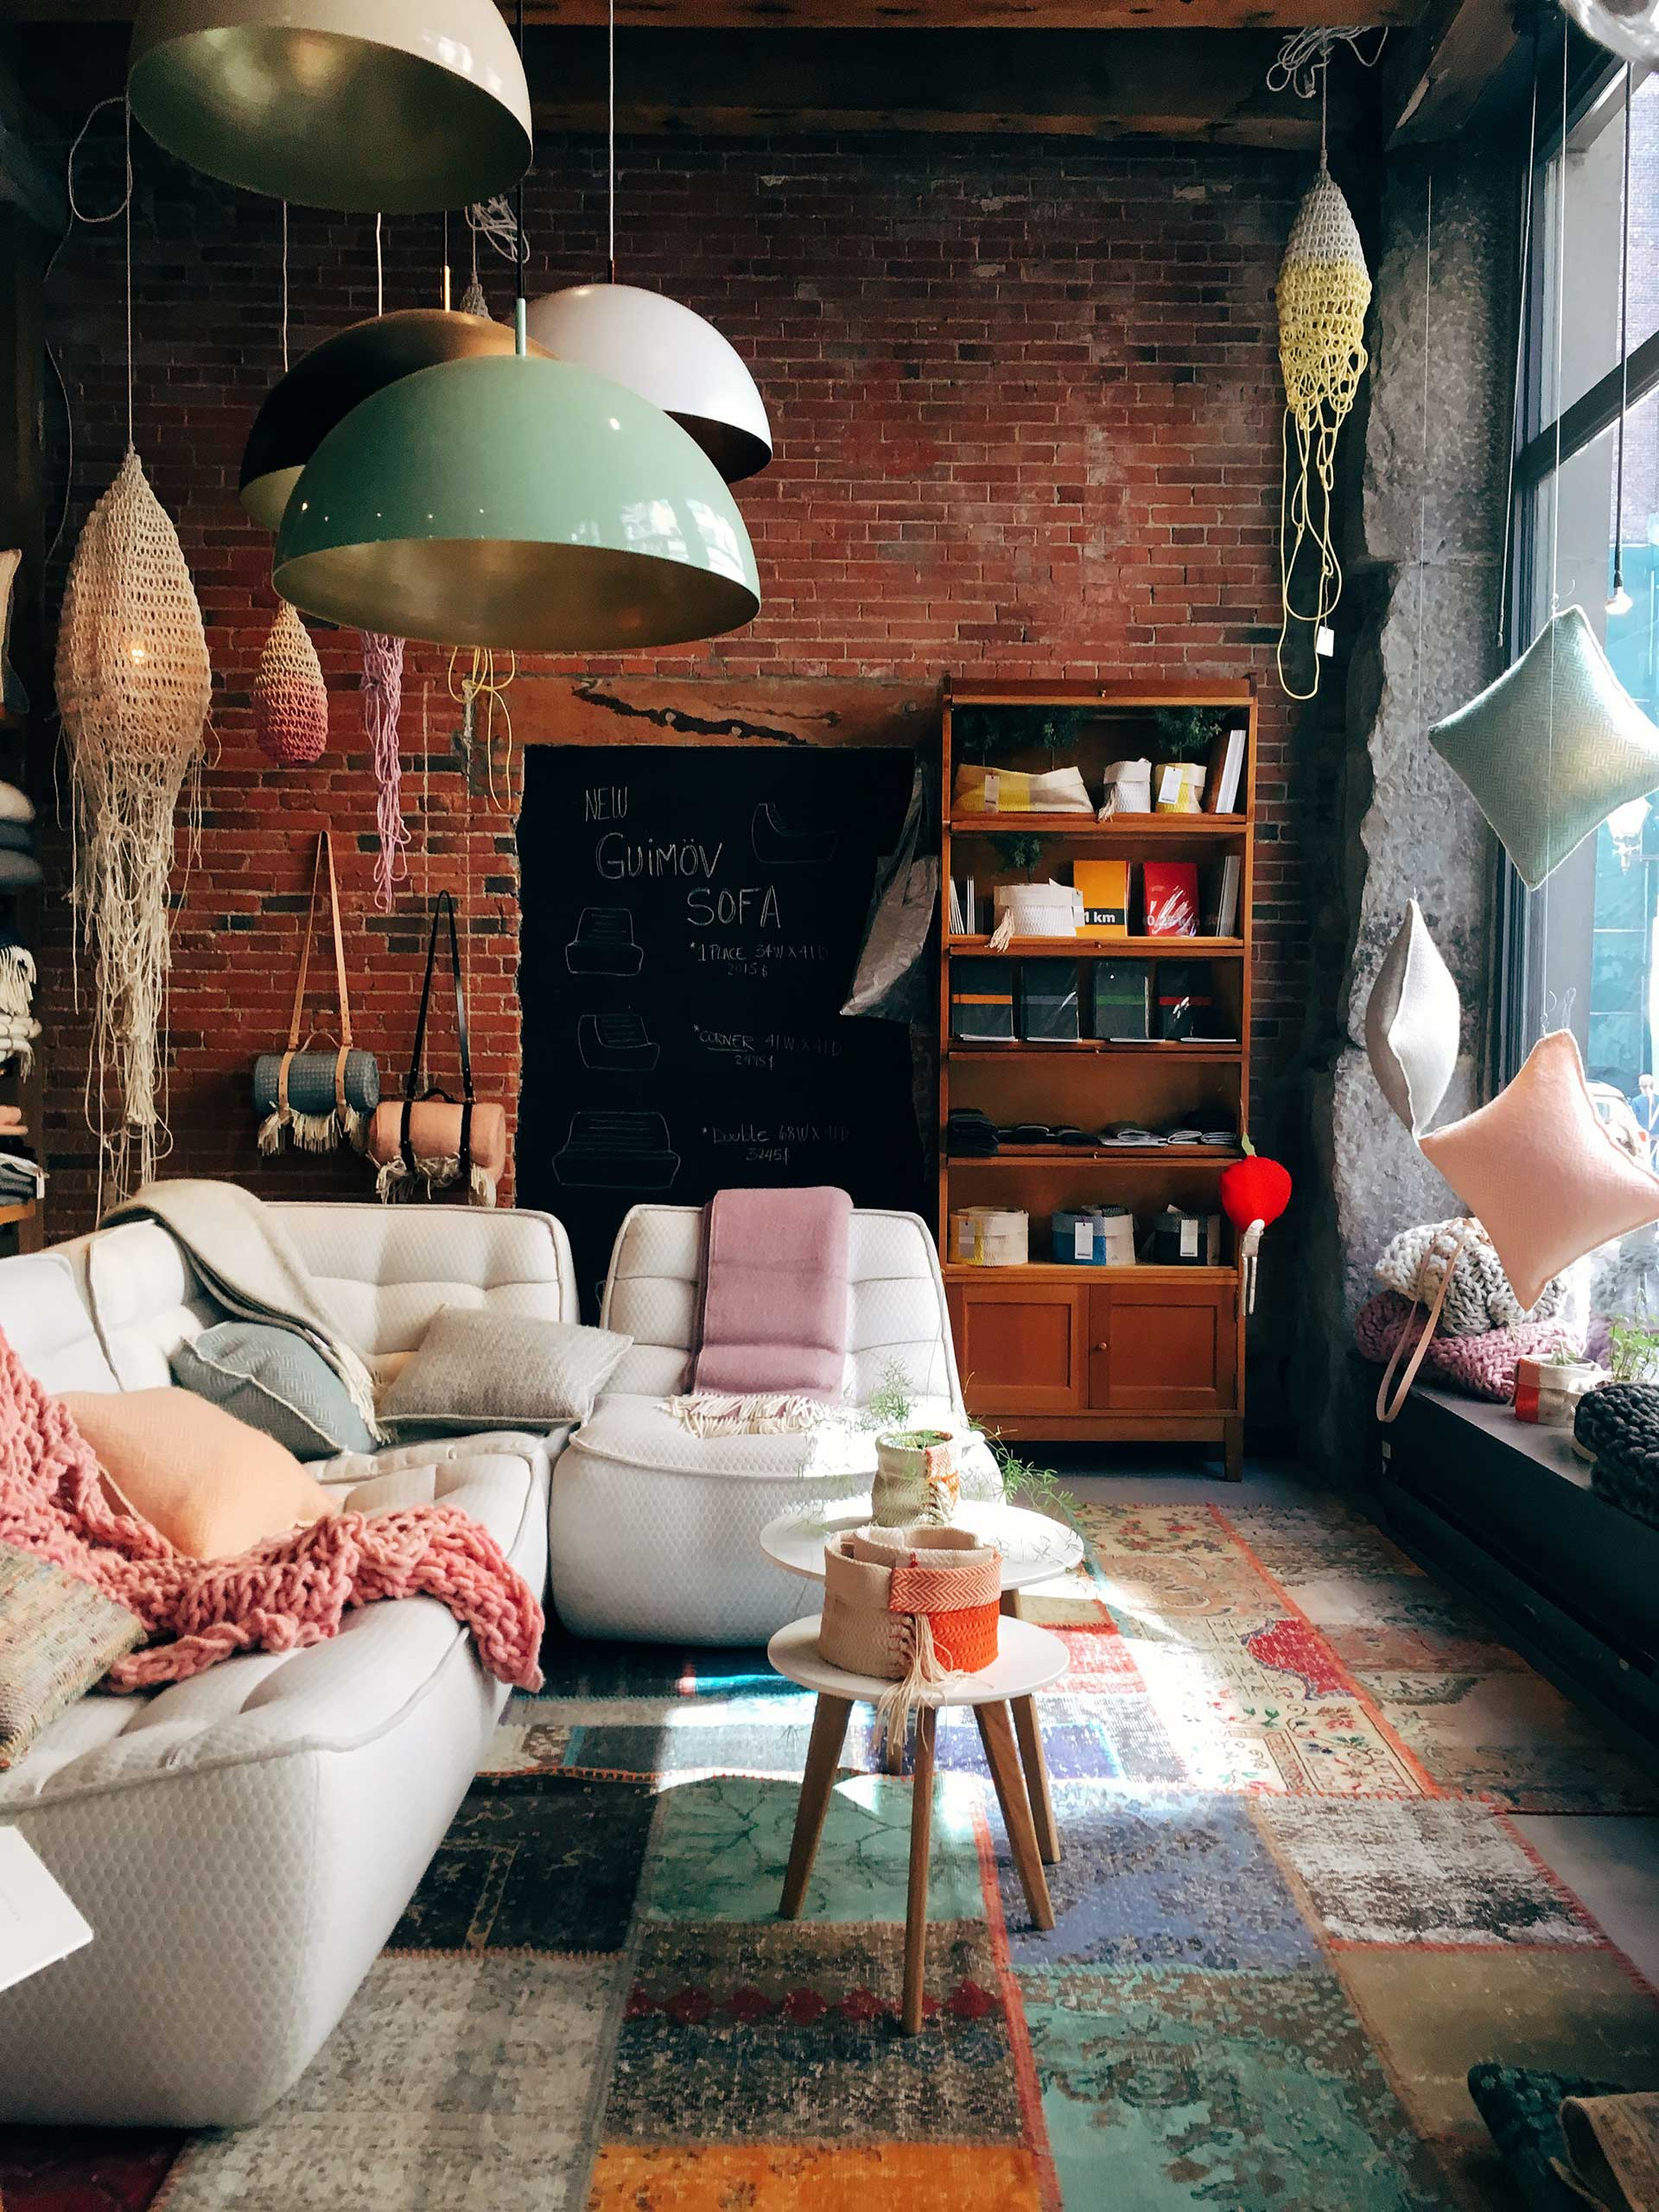 interior of willow boutique with unique chairs, pillows, and lighting